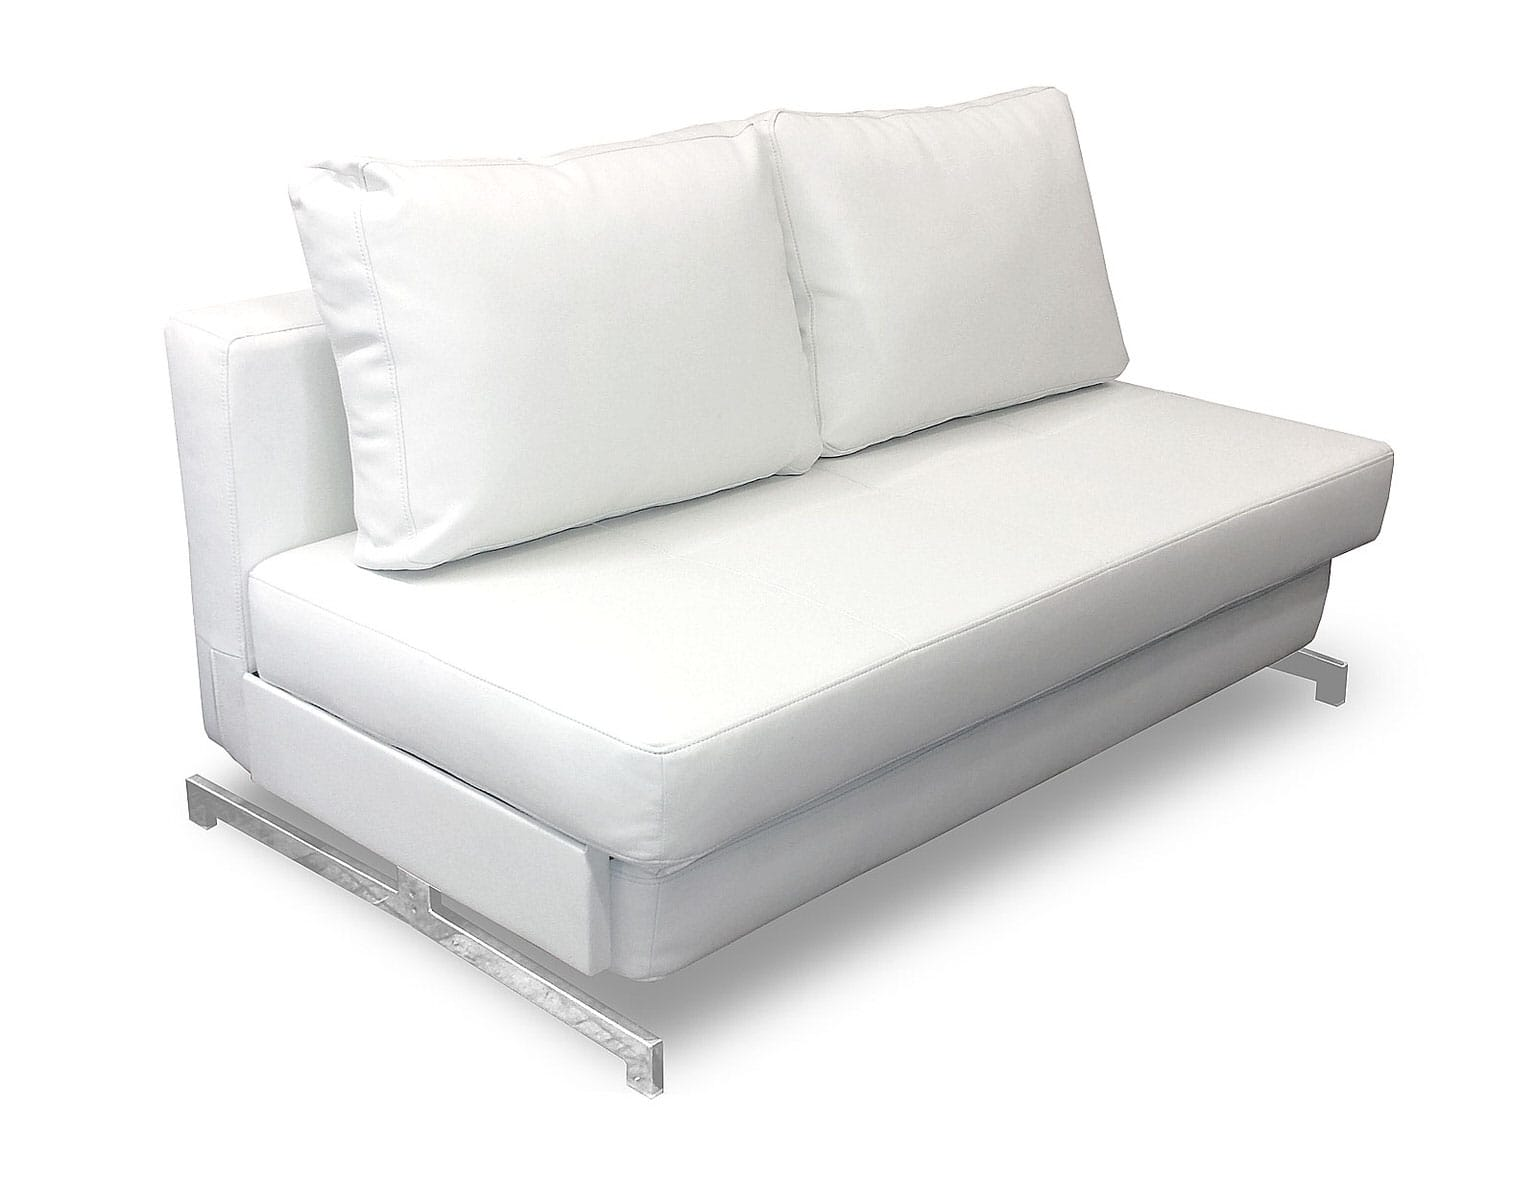 Picture of: Modern White Leather Textile Queen Sofa Sleeper K43 2 By Ido